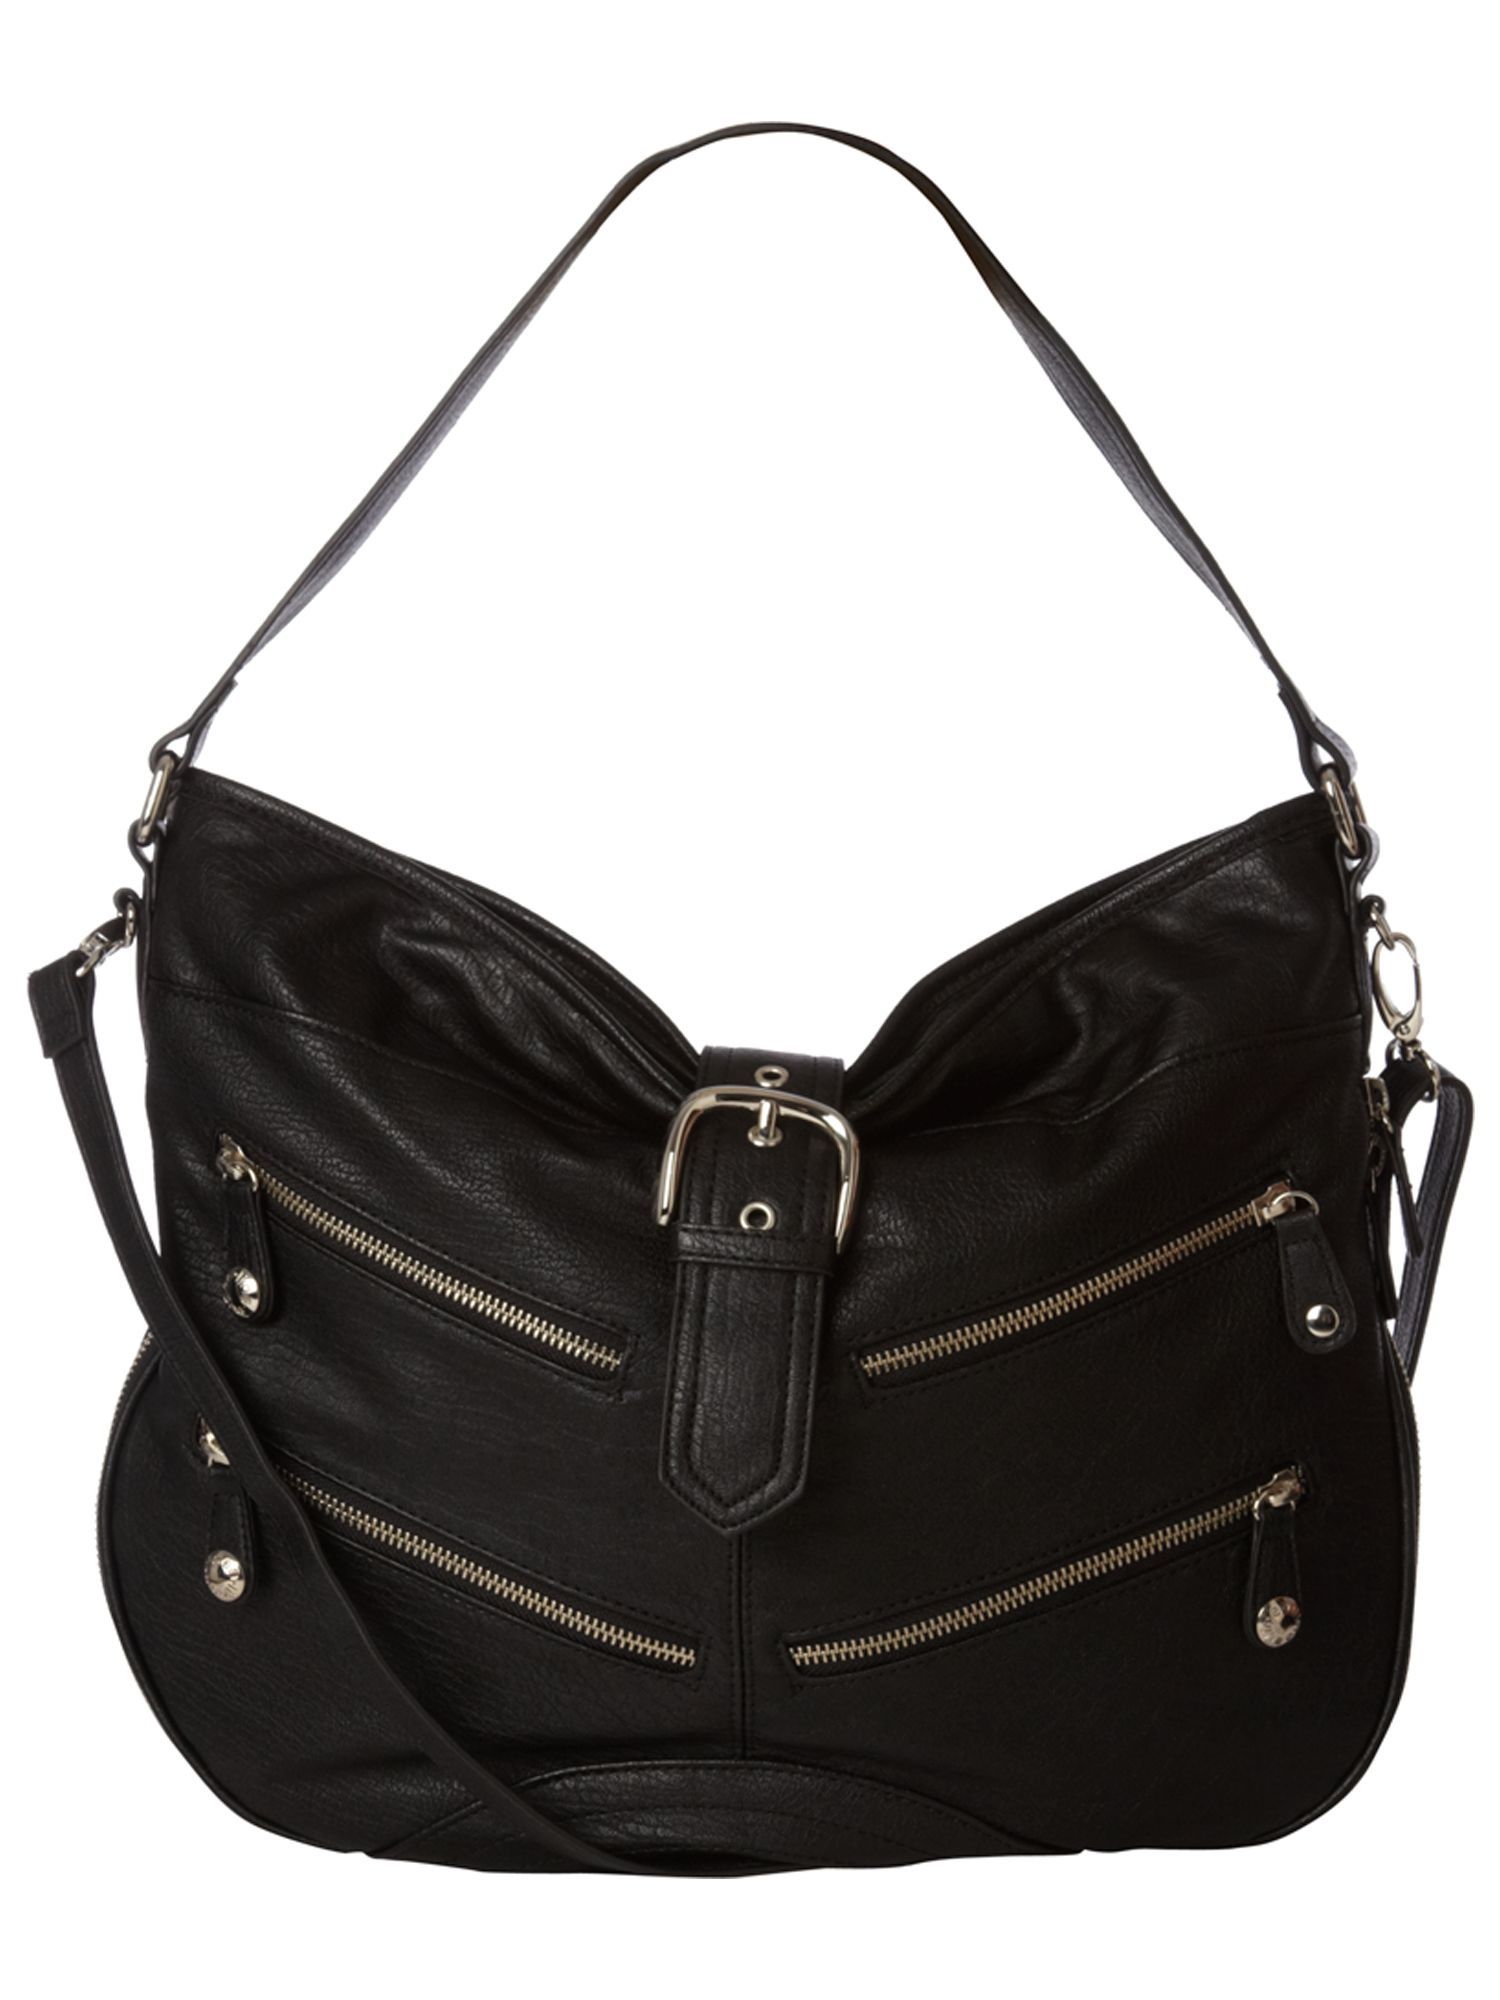 Linea Zippy large hobo bag product image